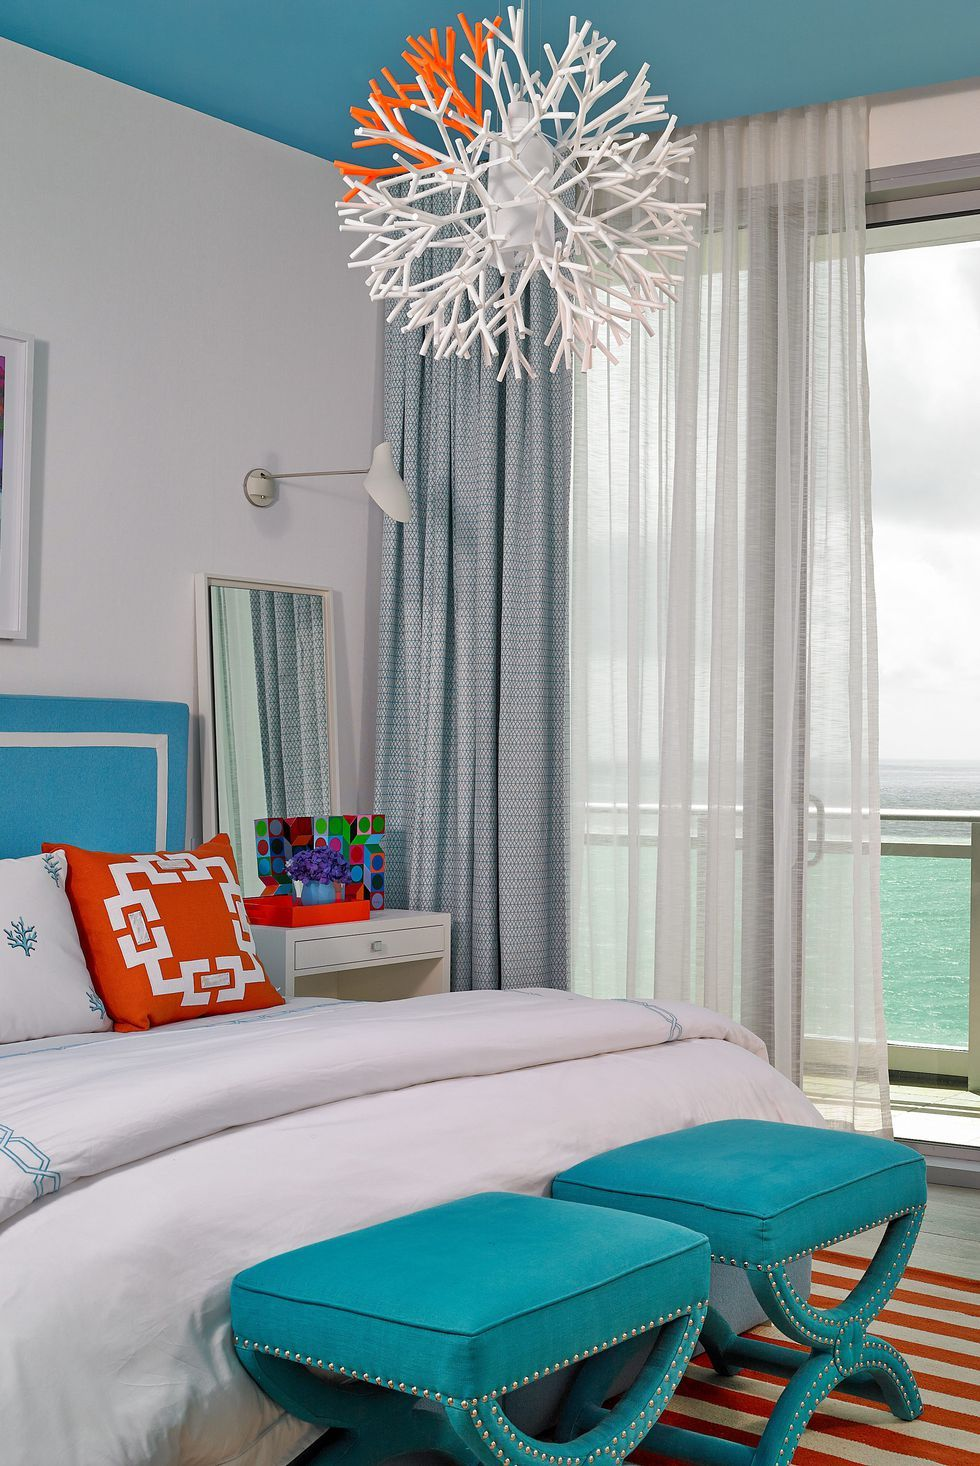 Standout colors collide and complement in a bedroom